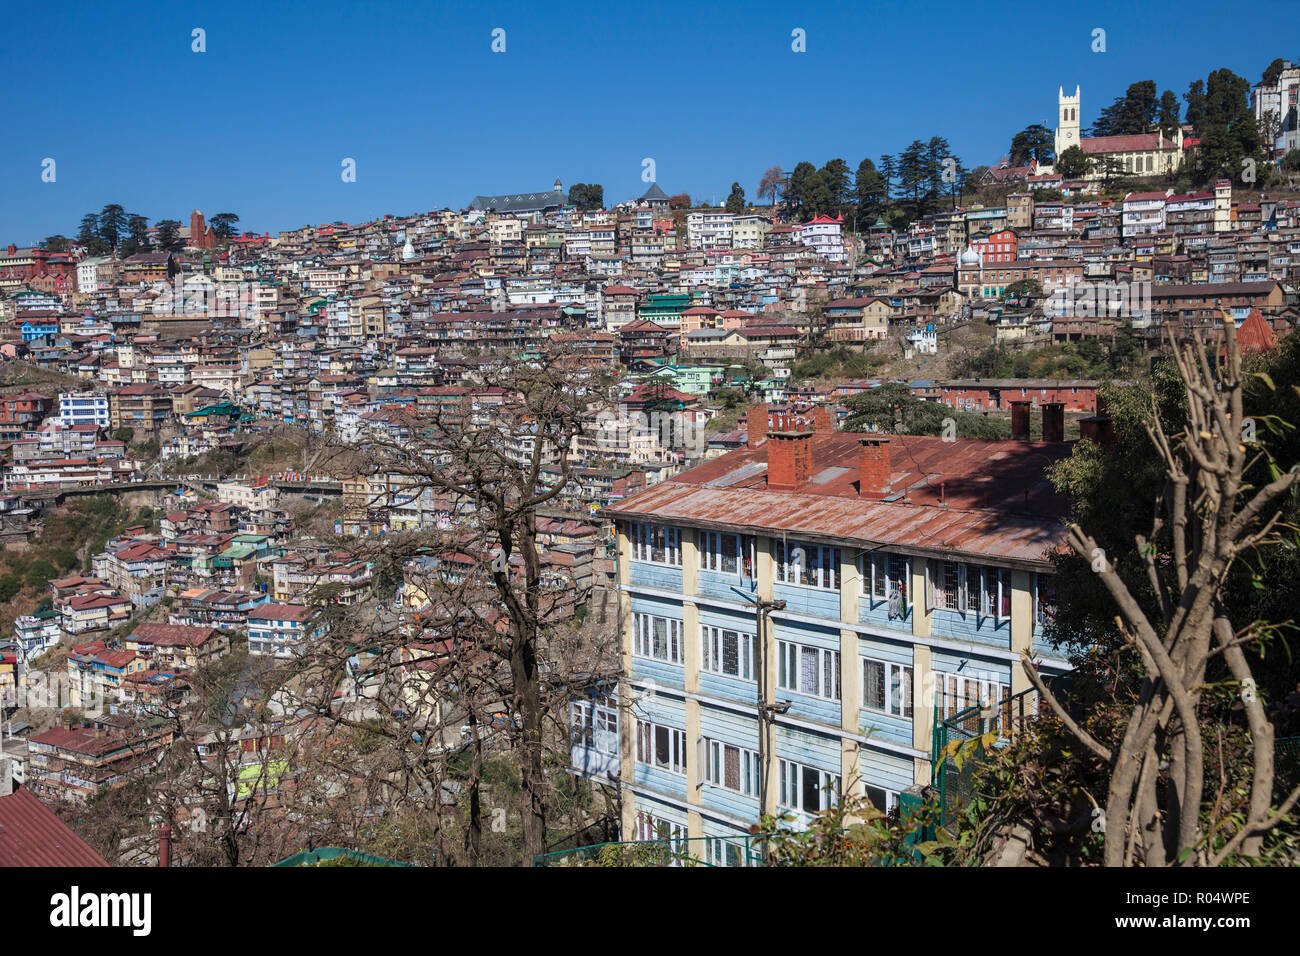 Terrace garden of Clarkes Hotel and city view, Shimla (Simla), Himachal Pradesh, India, Asia - Stock Image